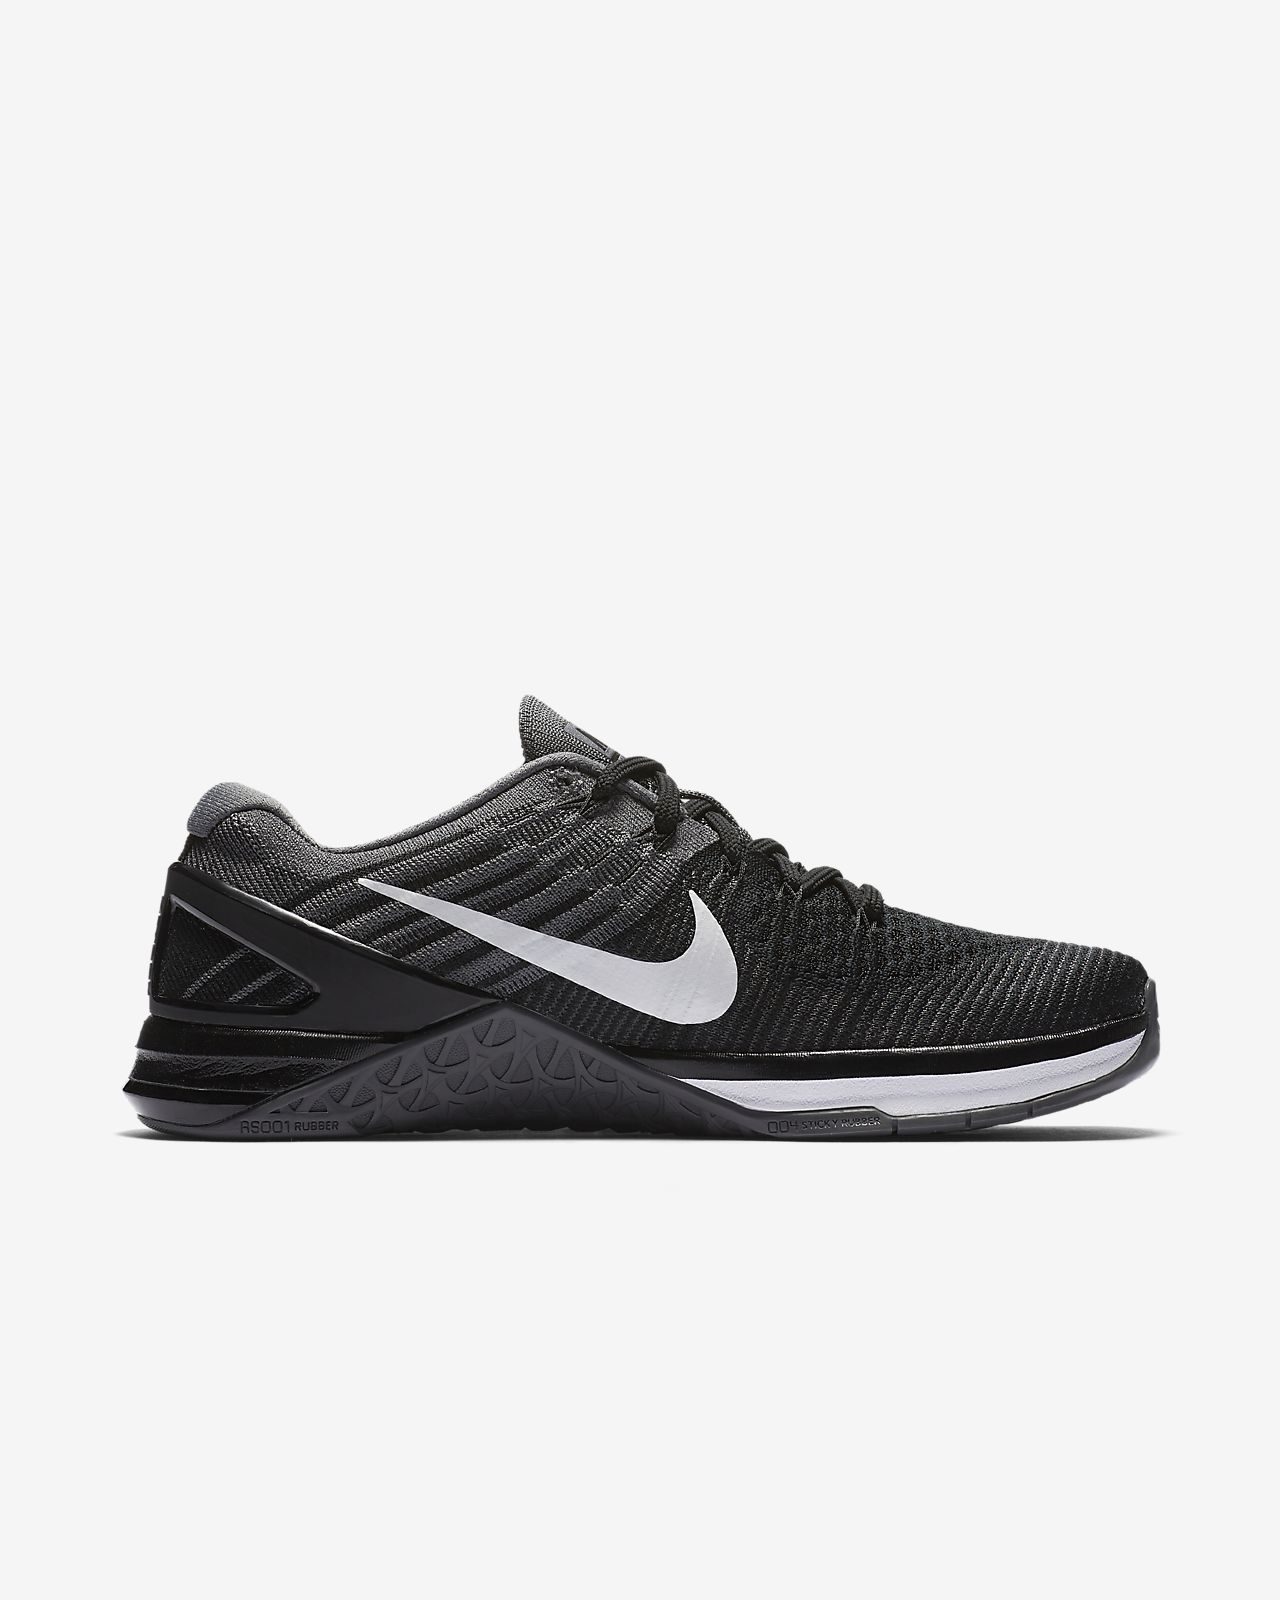 Nike Metcon Dsx Flyknit Noir - Chaussures Chaussures-de-running Homme